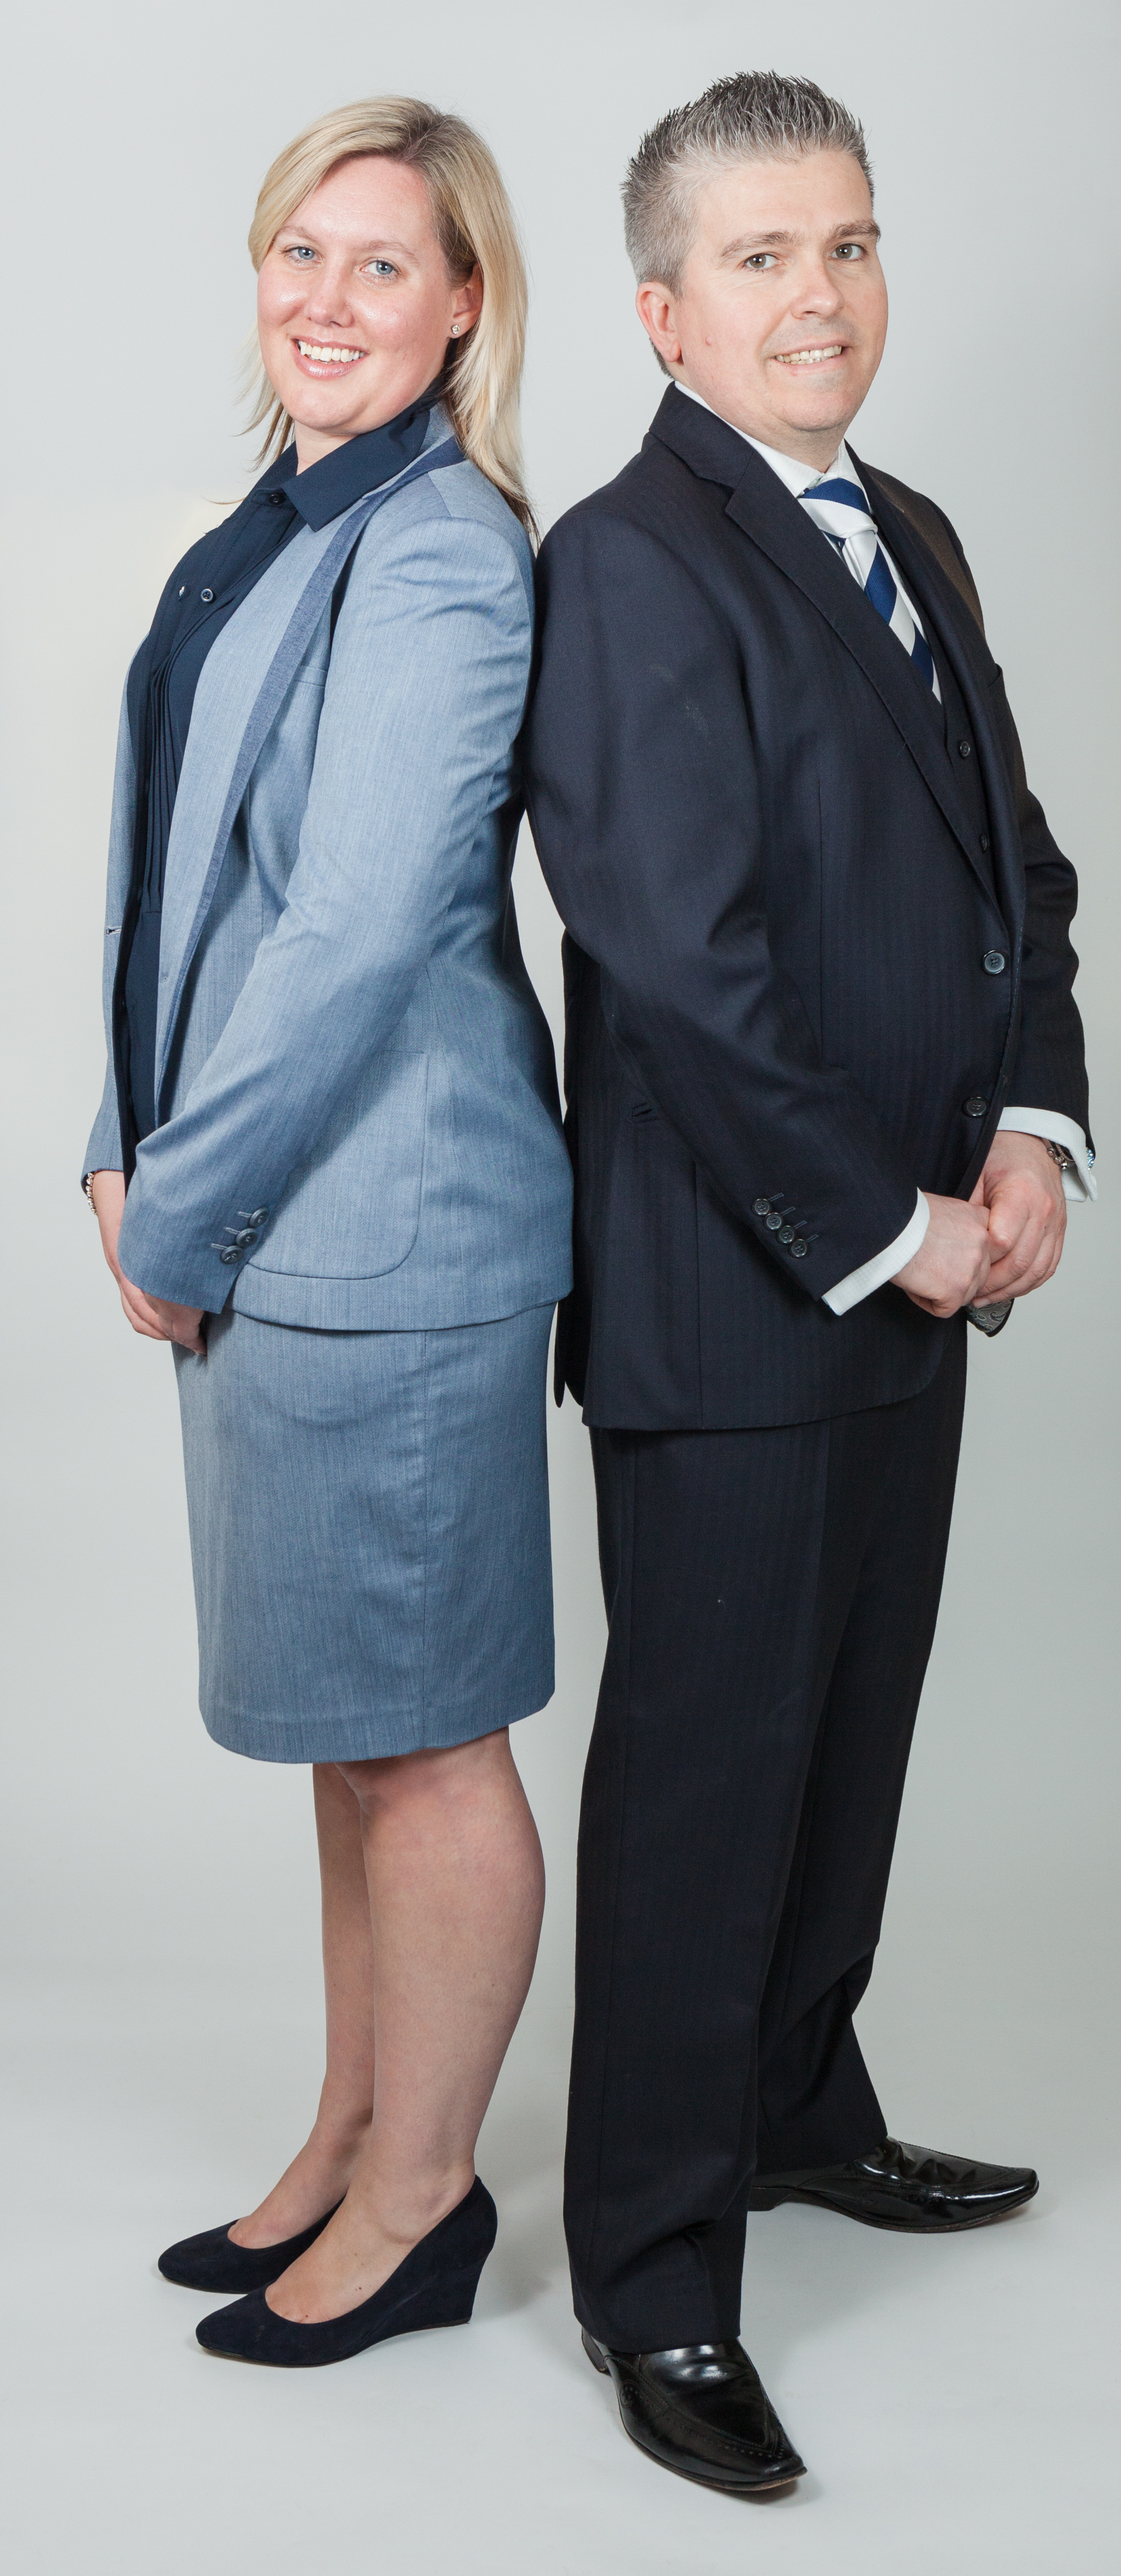 Jo and Dave Navy Suits- Full Length_SimbocLtd_6895.jpg